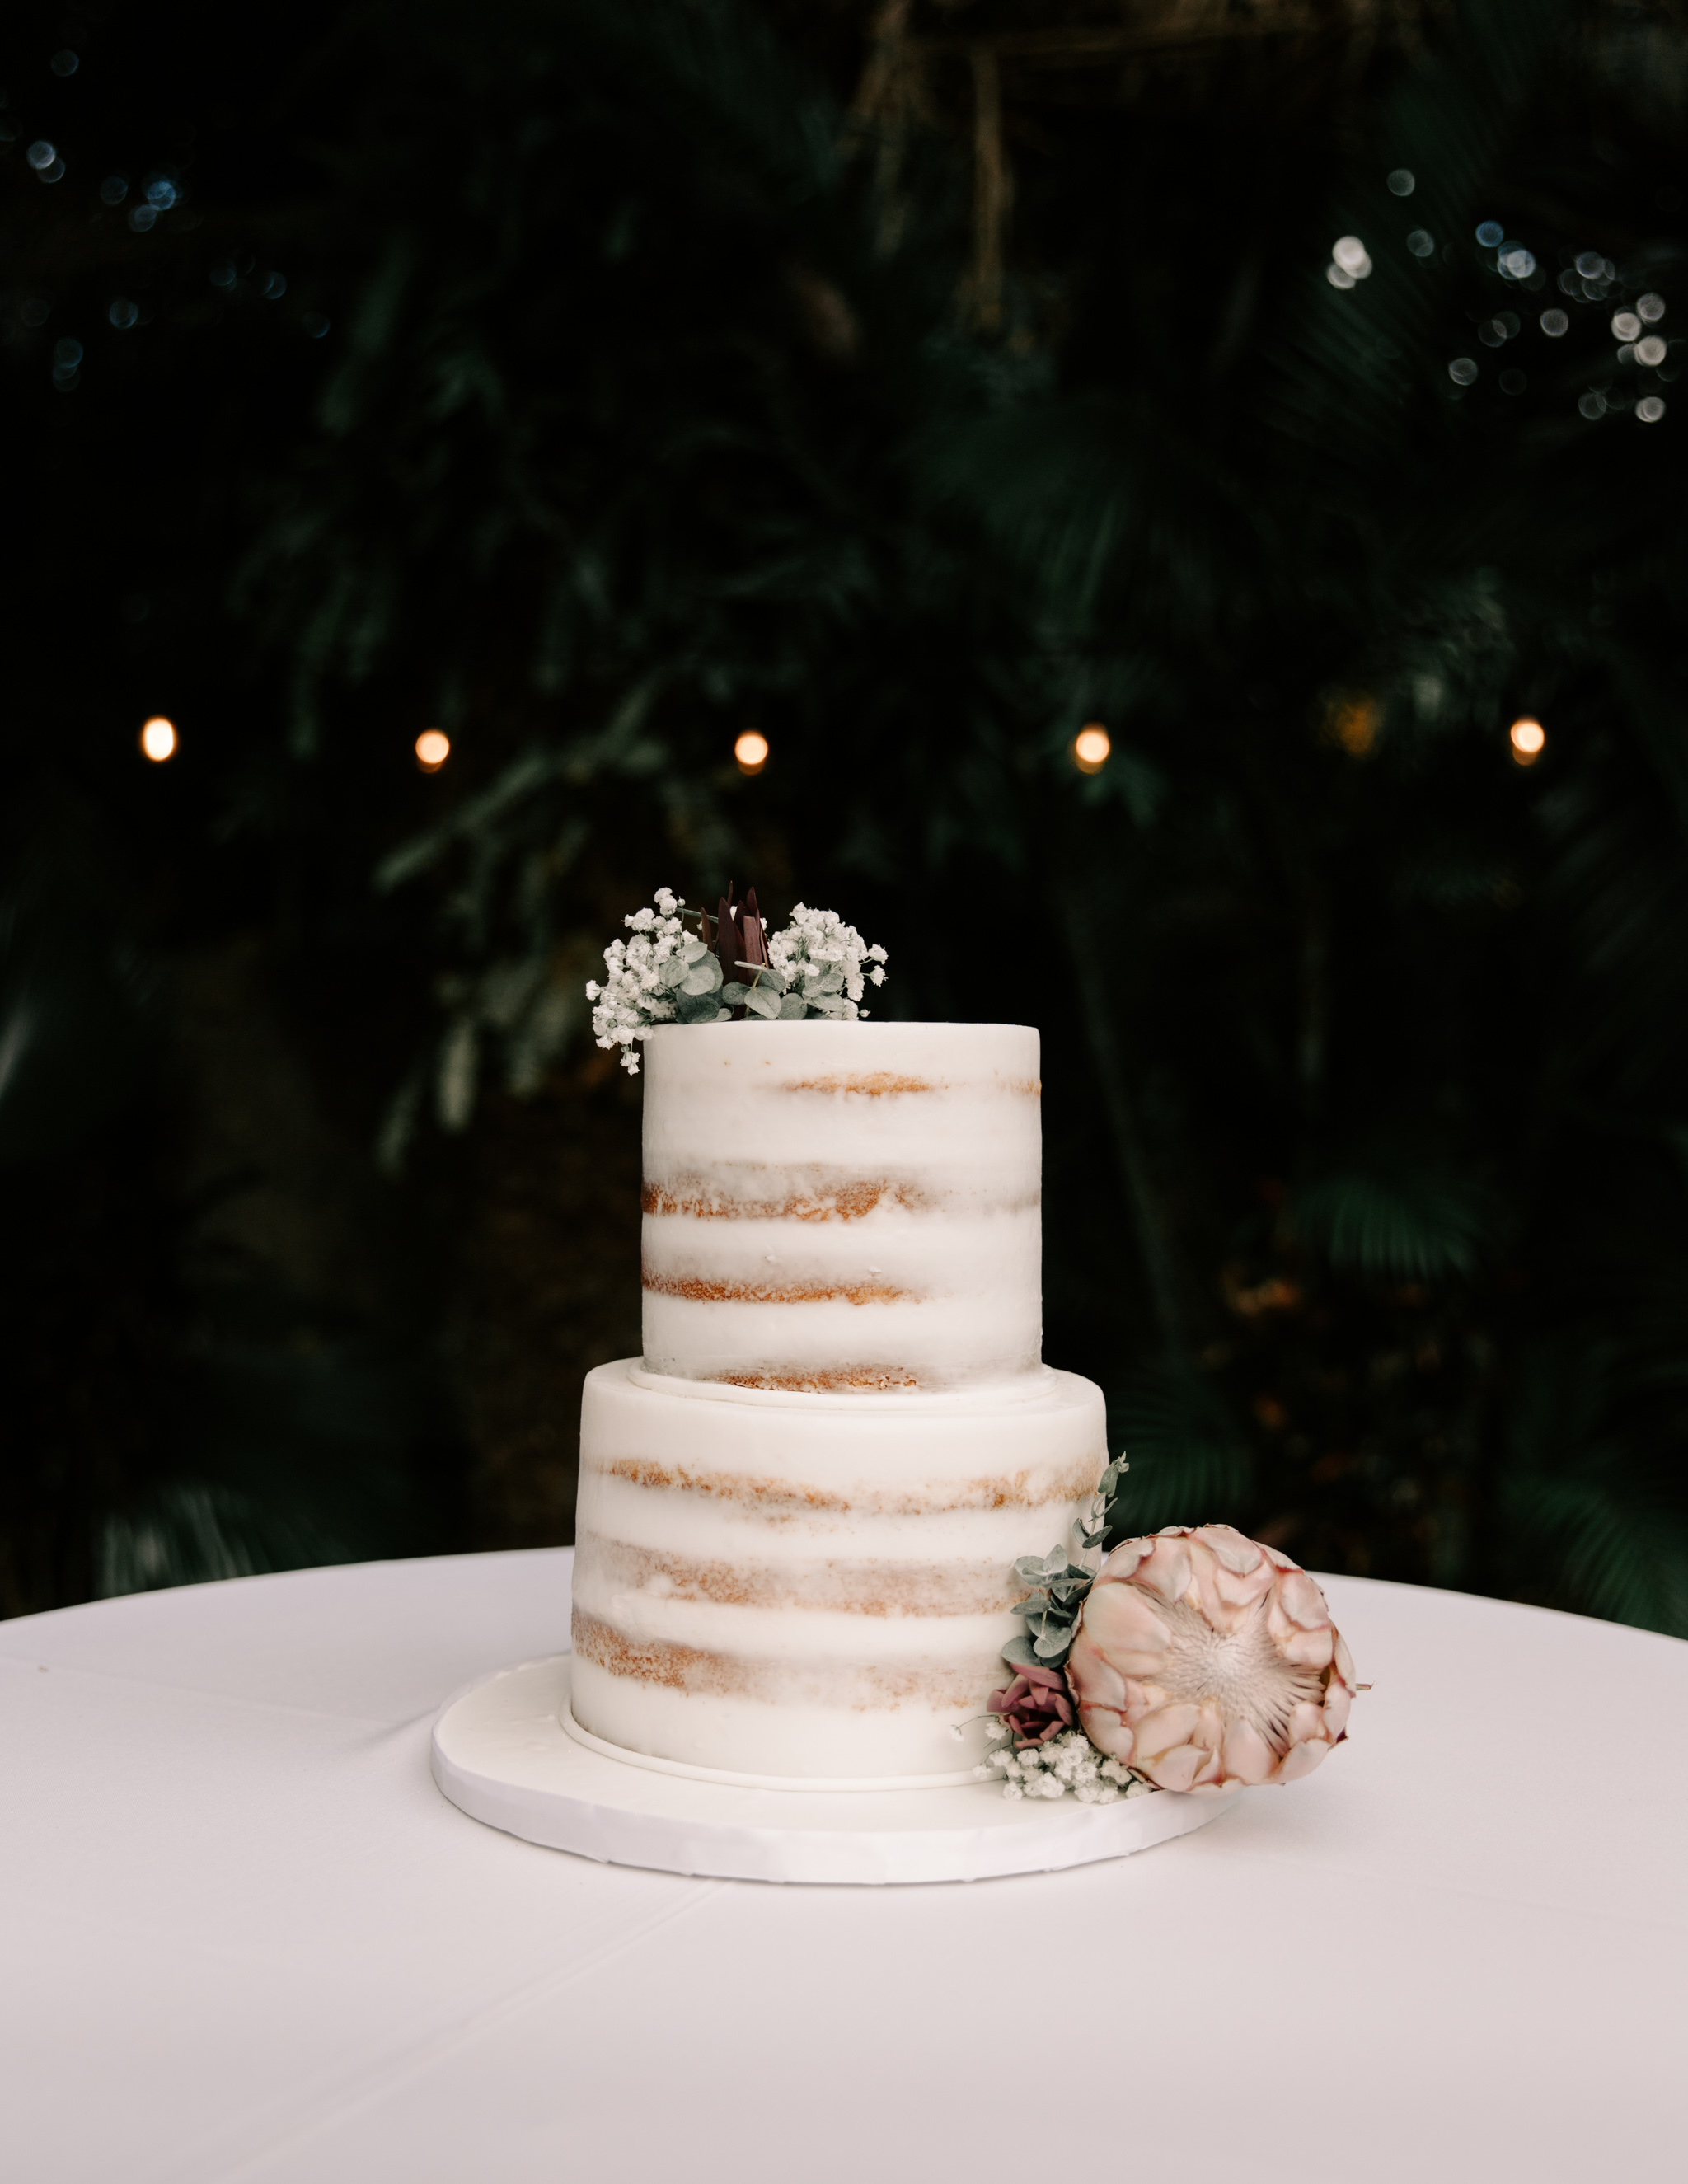 Simple Wedding Cake with Protea Flowers - Hale Koa Phineas Estate Wedding By Oahu Wedding Photographer Desiree Leilani